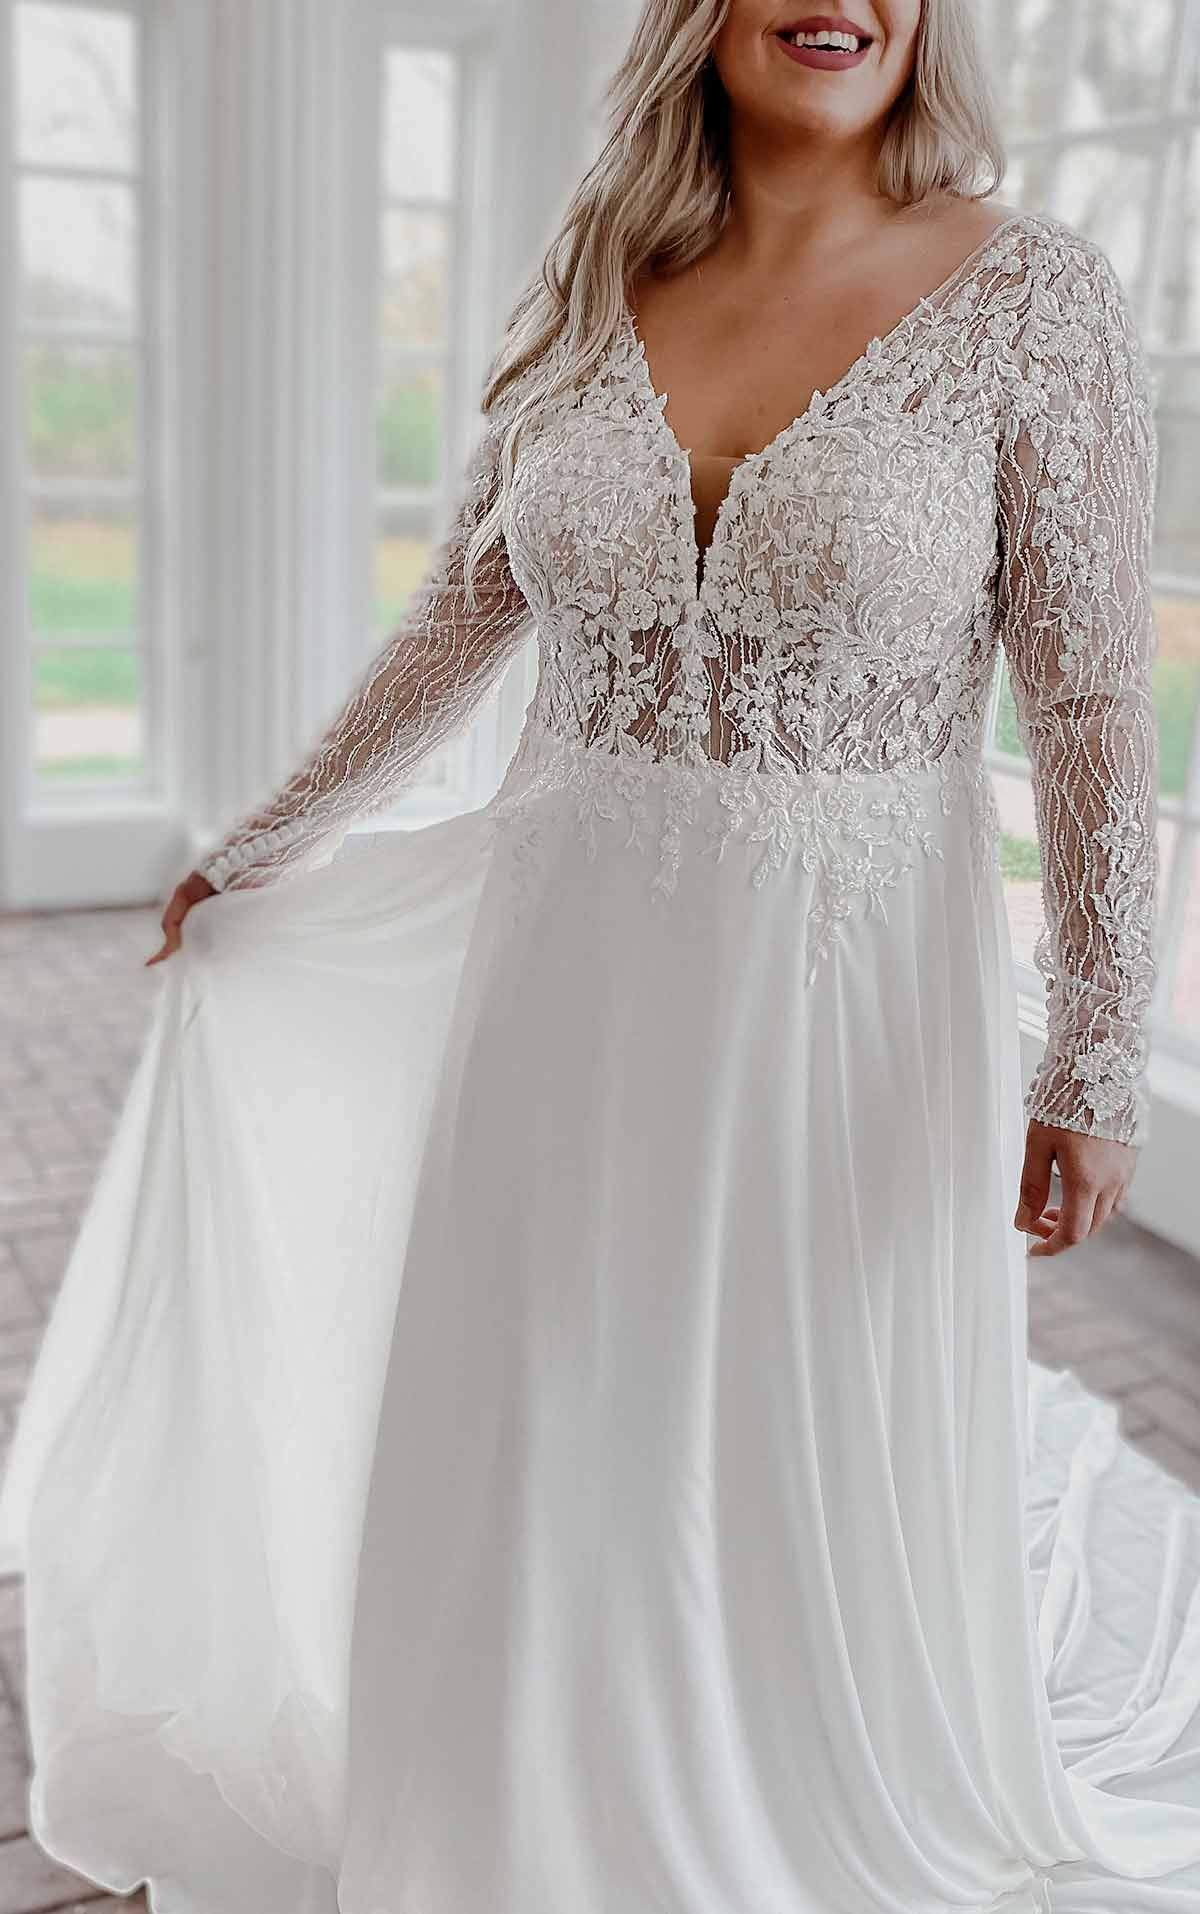 Modern Mixed Fabric Plus Size Wedding Dress With Lace And Long Sleeves Stella York Wedding Dresses In 2021 Plus Size Wedding Dresses With Sleeves Wedding Dress Long Sleeve Wedding Dresses Lace [ 1914 x 1200 Pixel ]